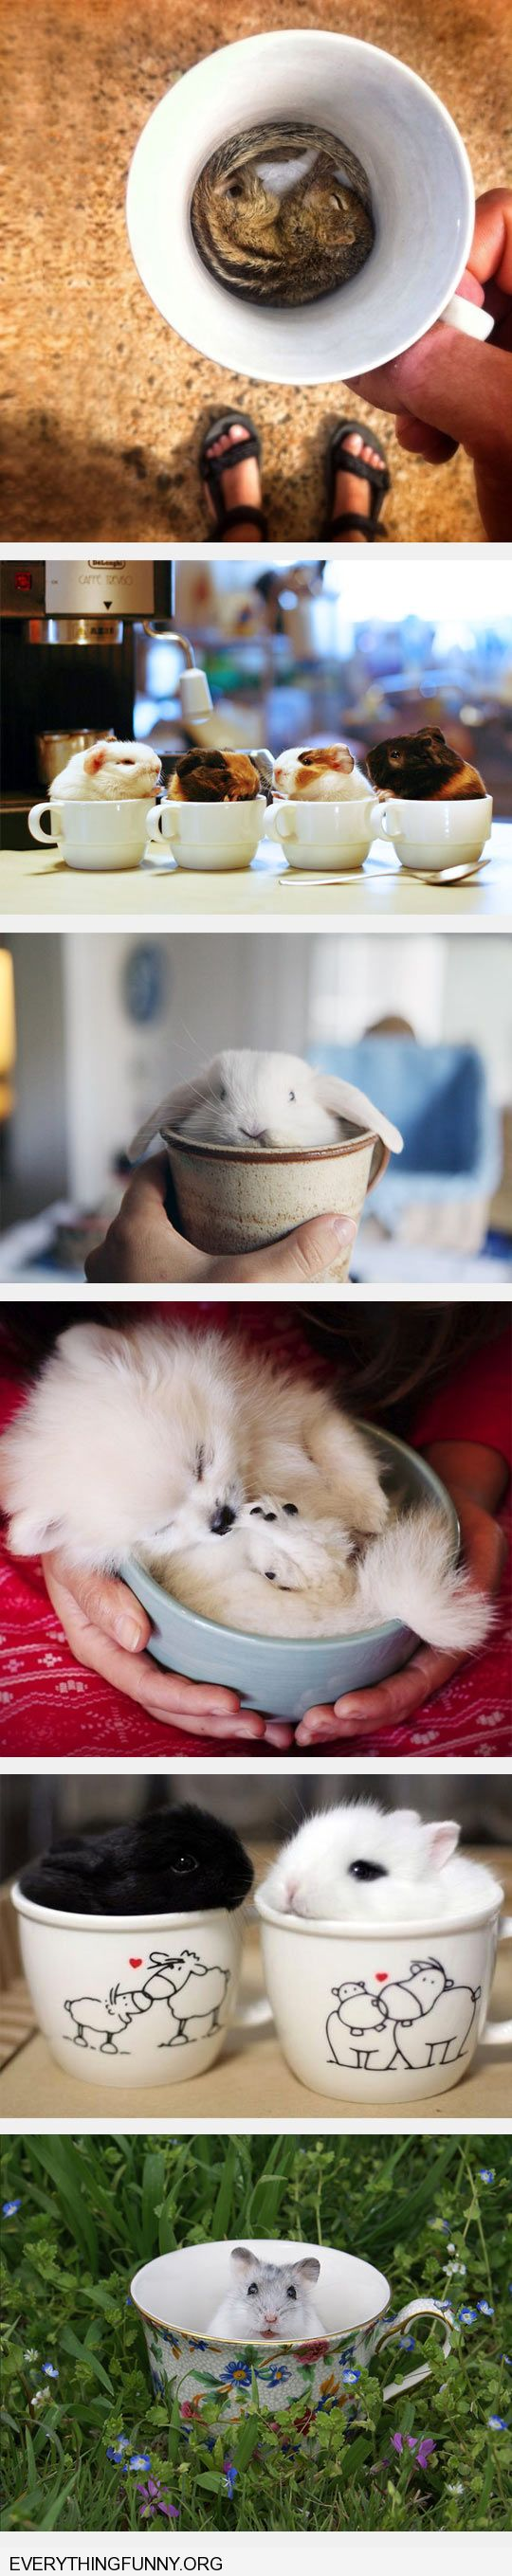 funny caption adorable animals in tiny cups